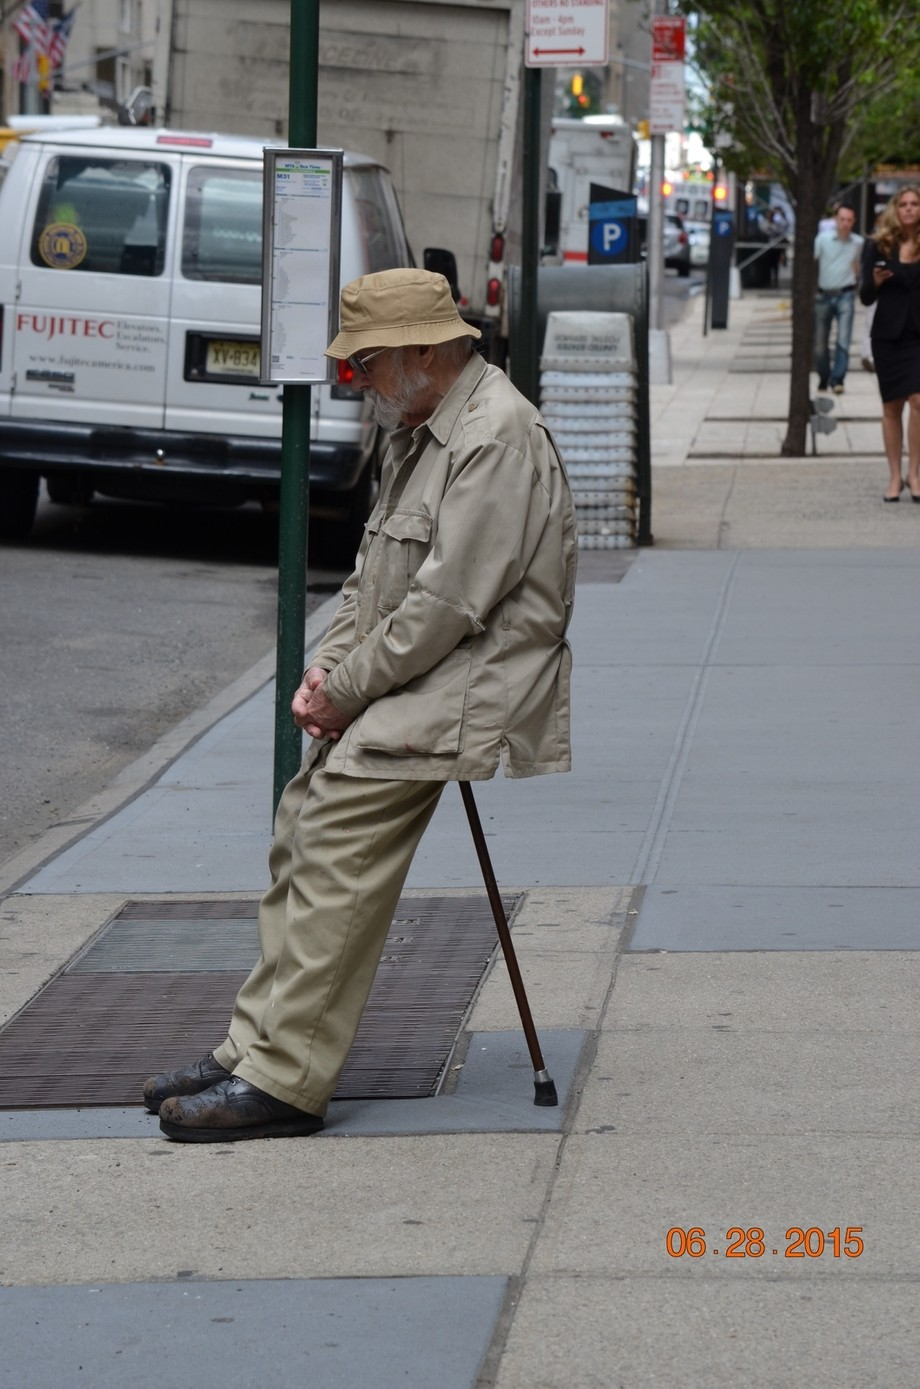 Saw this man alone in New York City, NY